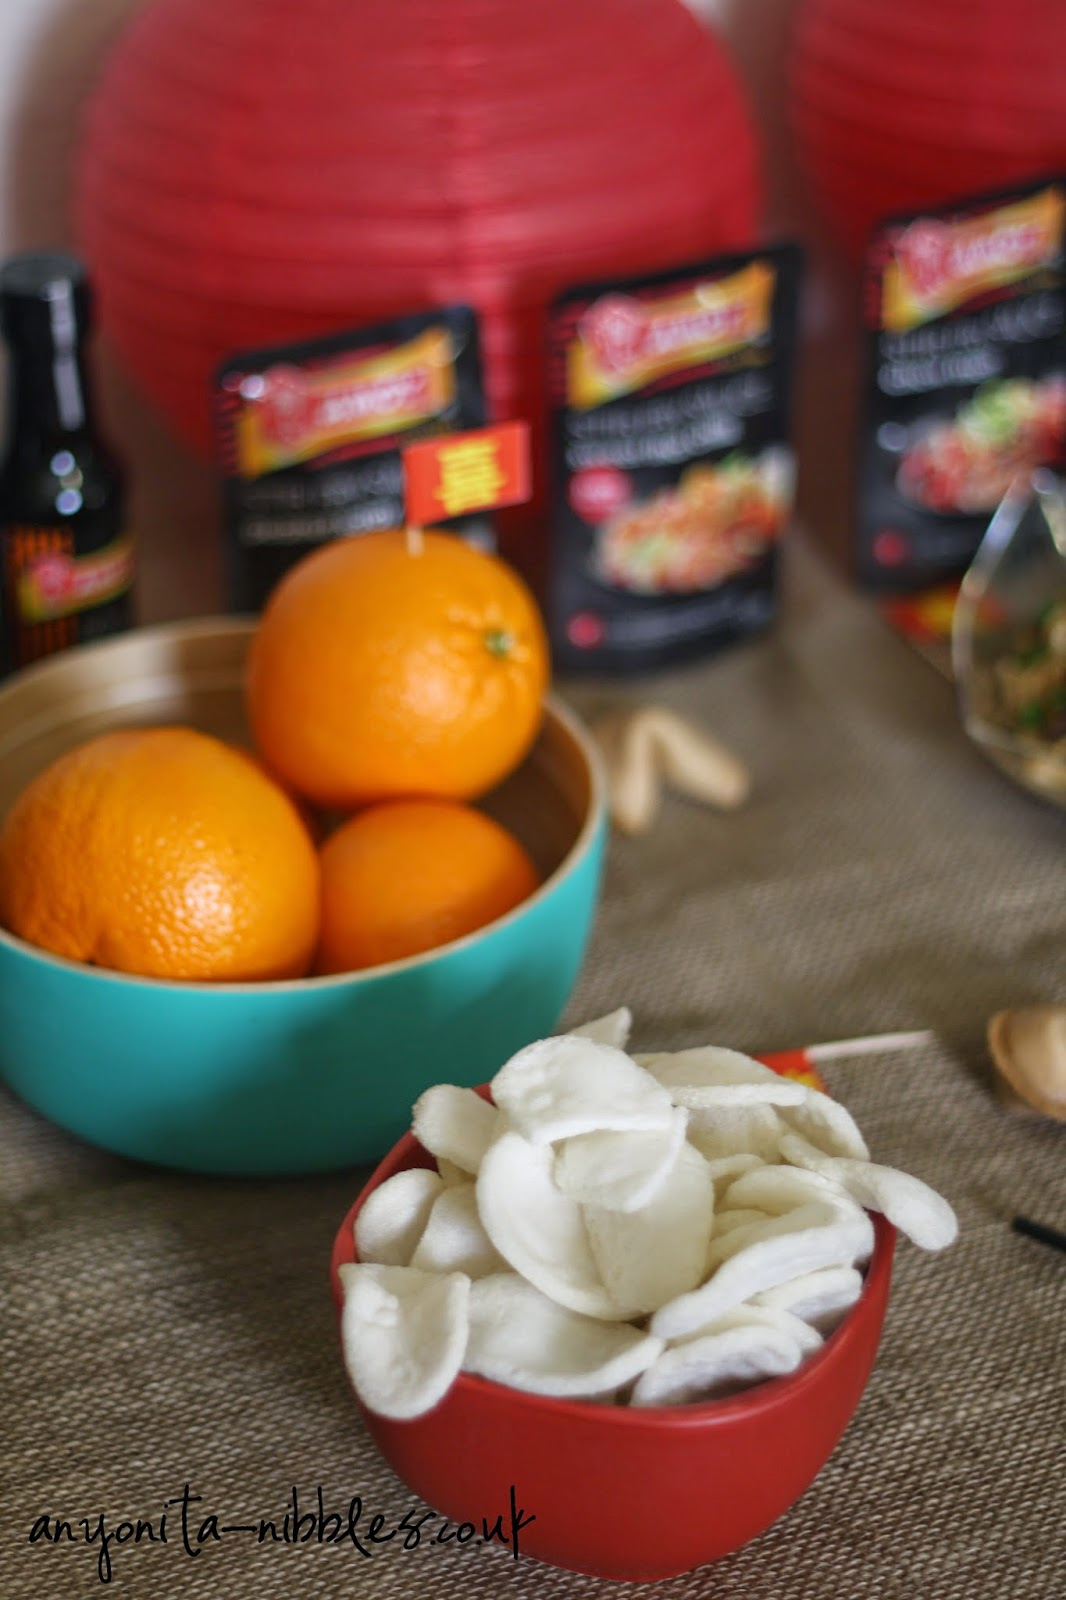 Oranges and prawn crackers from Anyonita-nibbles.co.uk